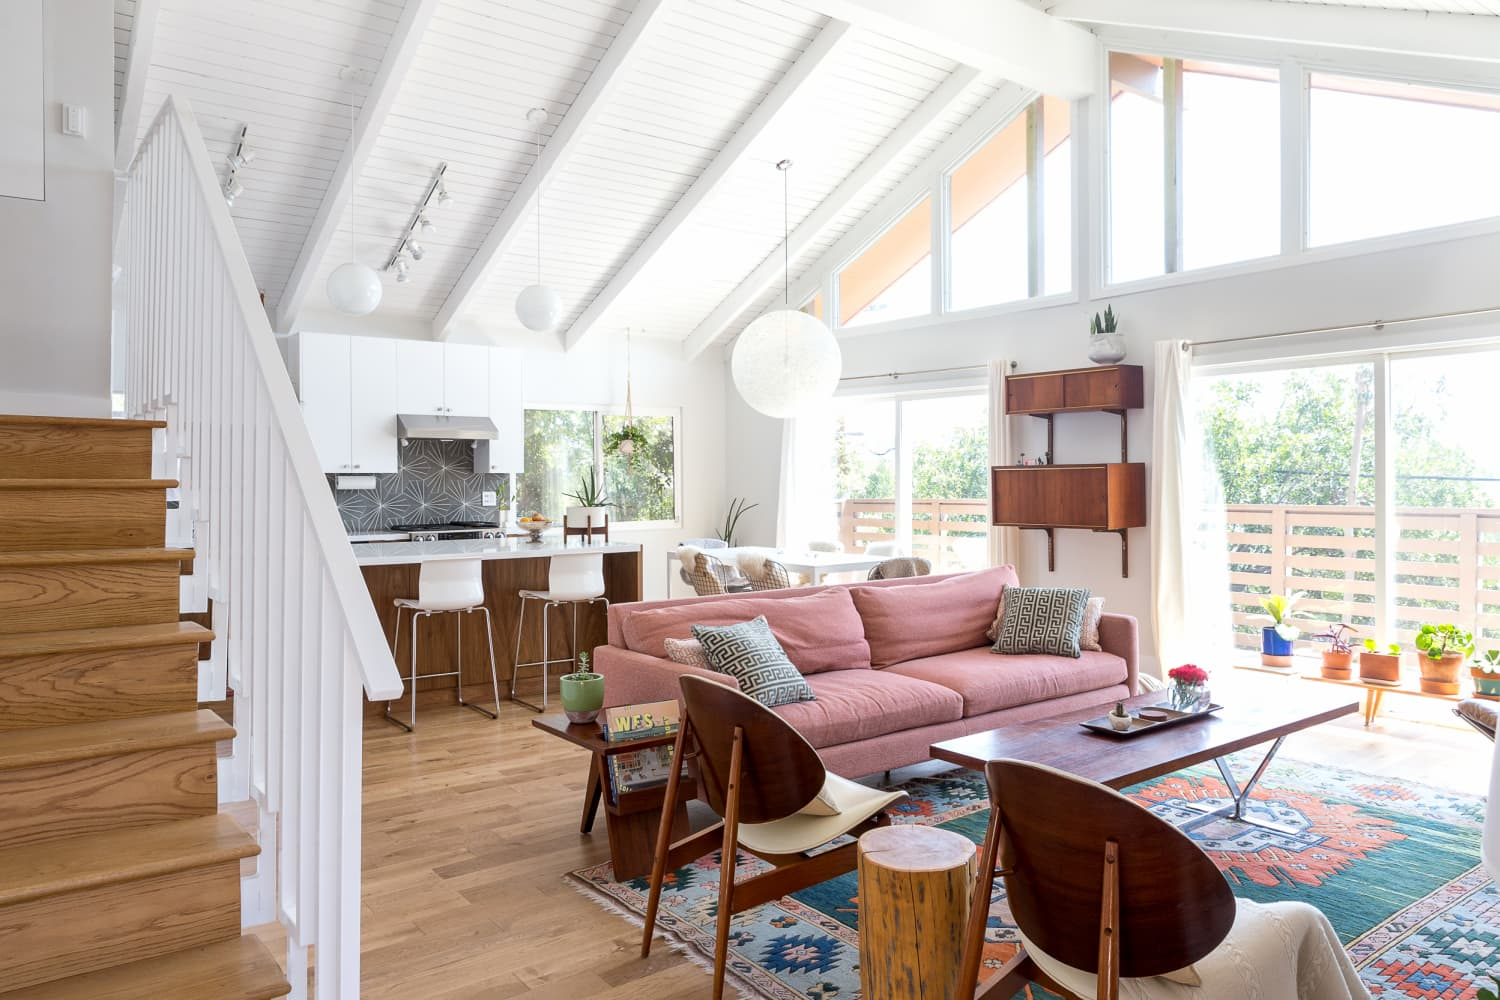 8 Open Concept Layout Mistakes We Should All Stop Making